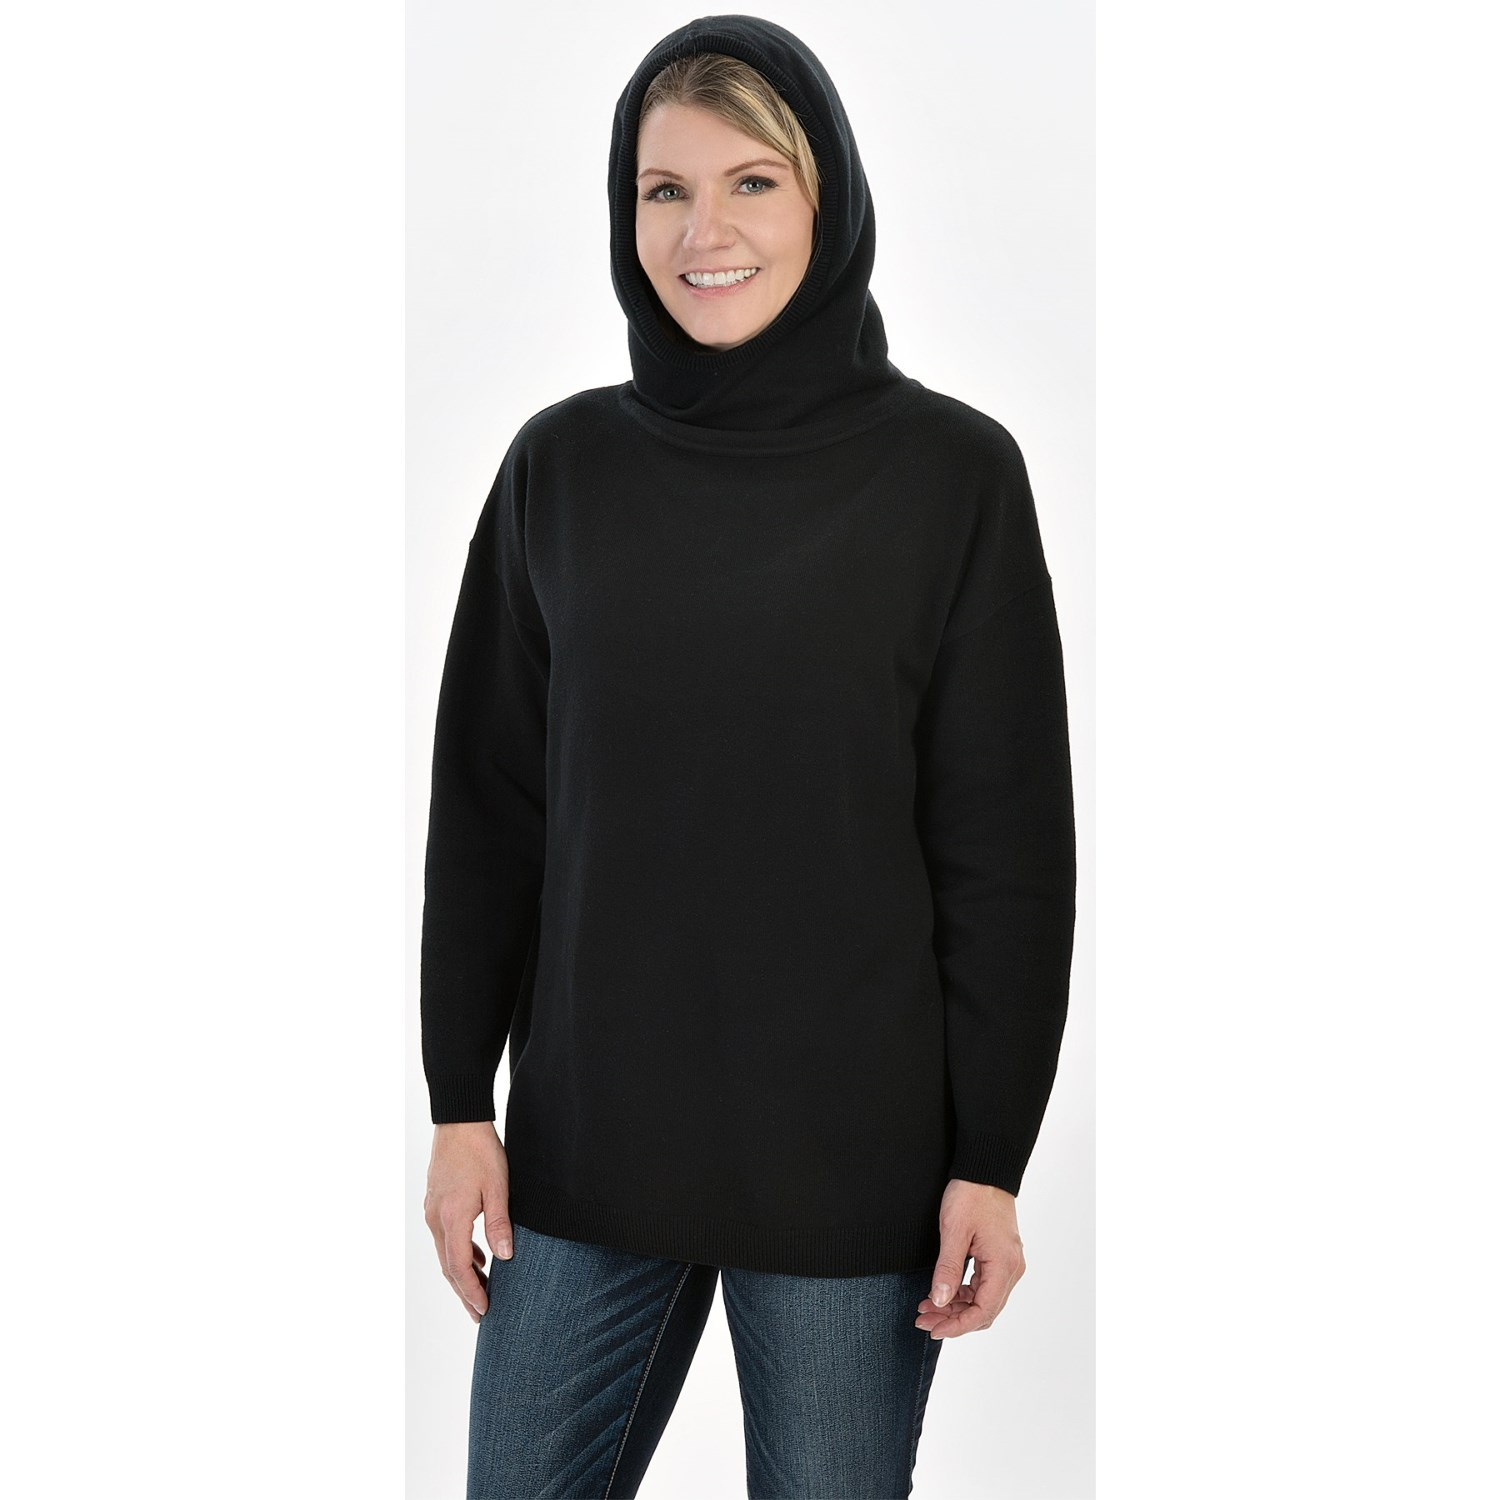 vass single muslim girls Meet single muslim american women for marriage and find your true love at muslimacom sign up today and browse profiles of single muslim american women for marriage for free.